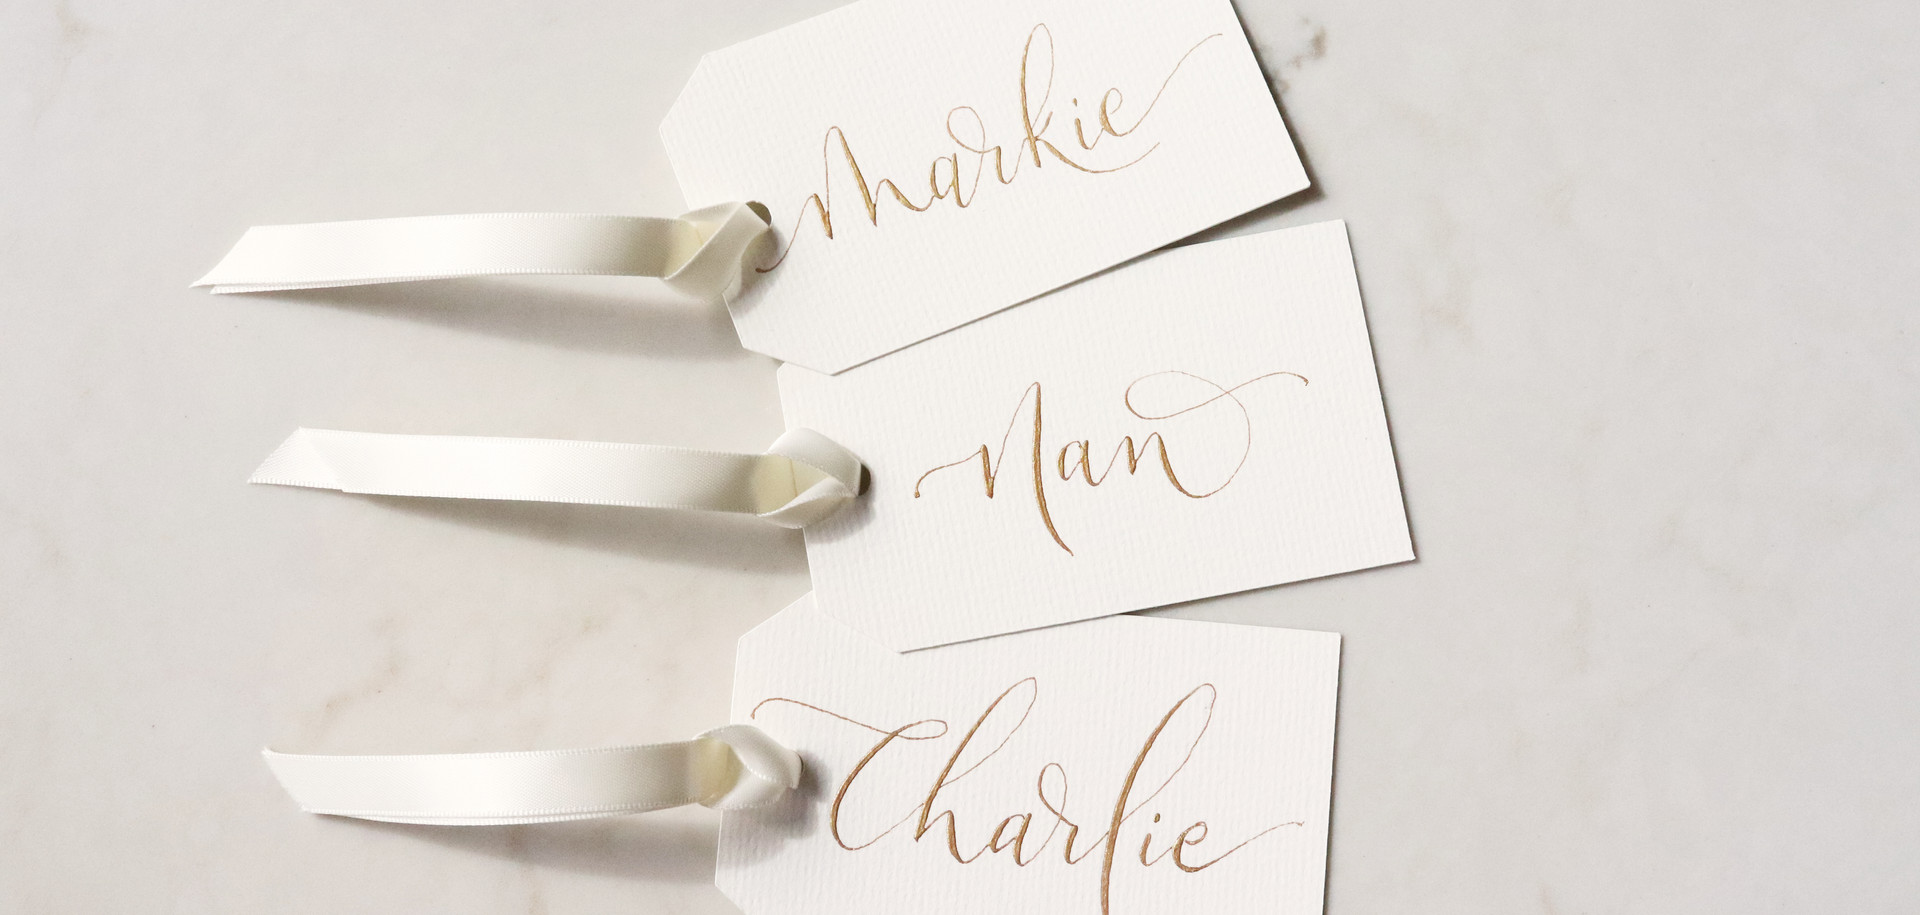 Wedding-name-place-cards.jpg